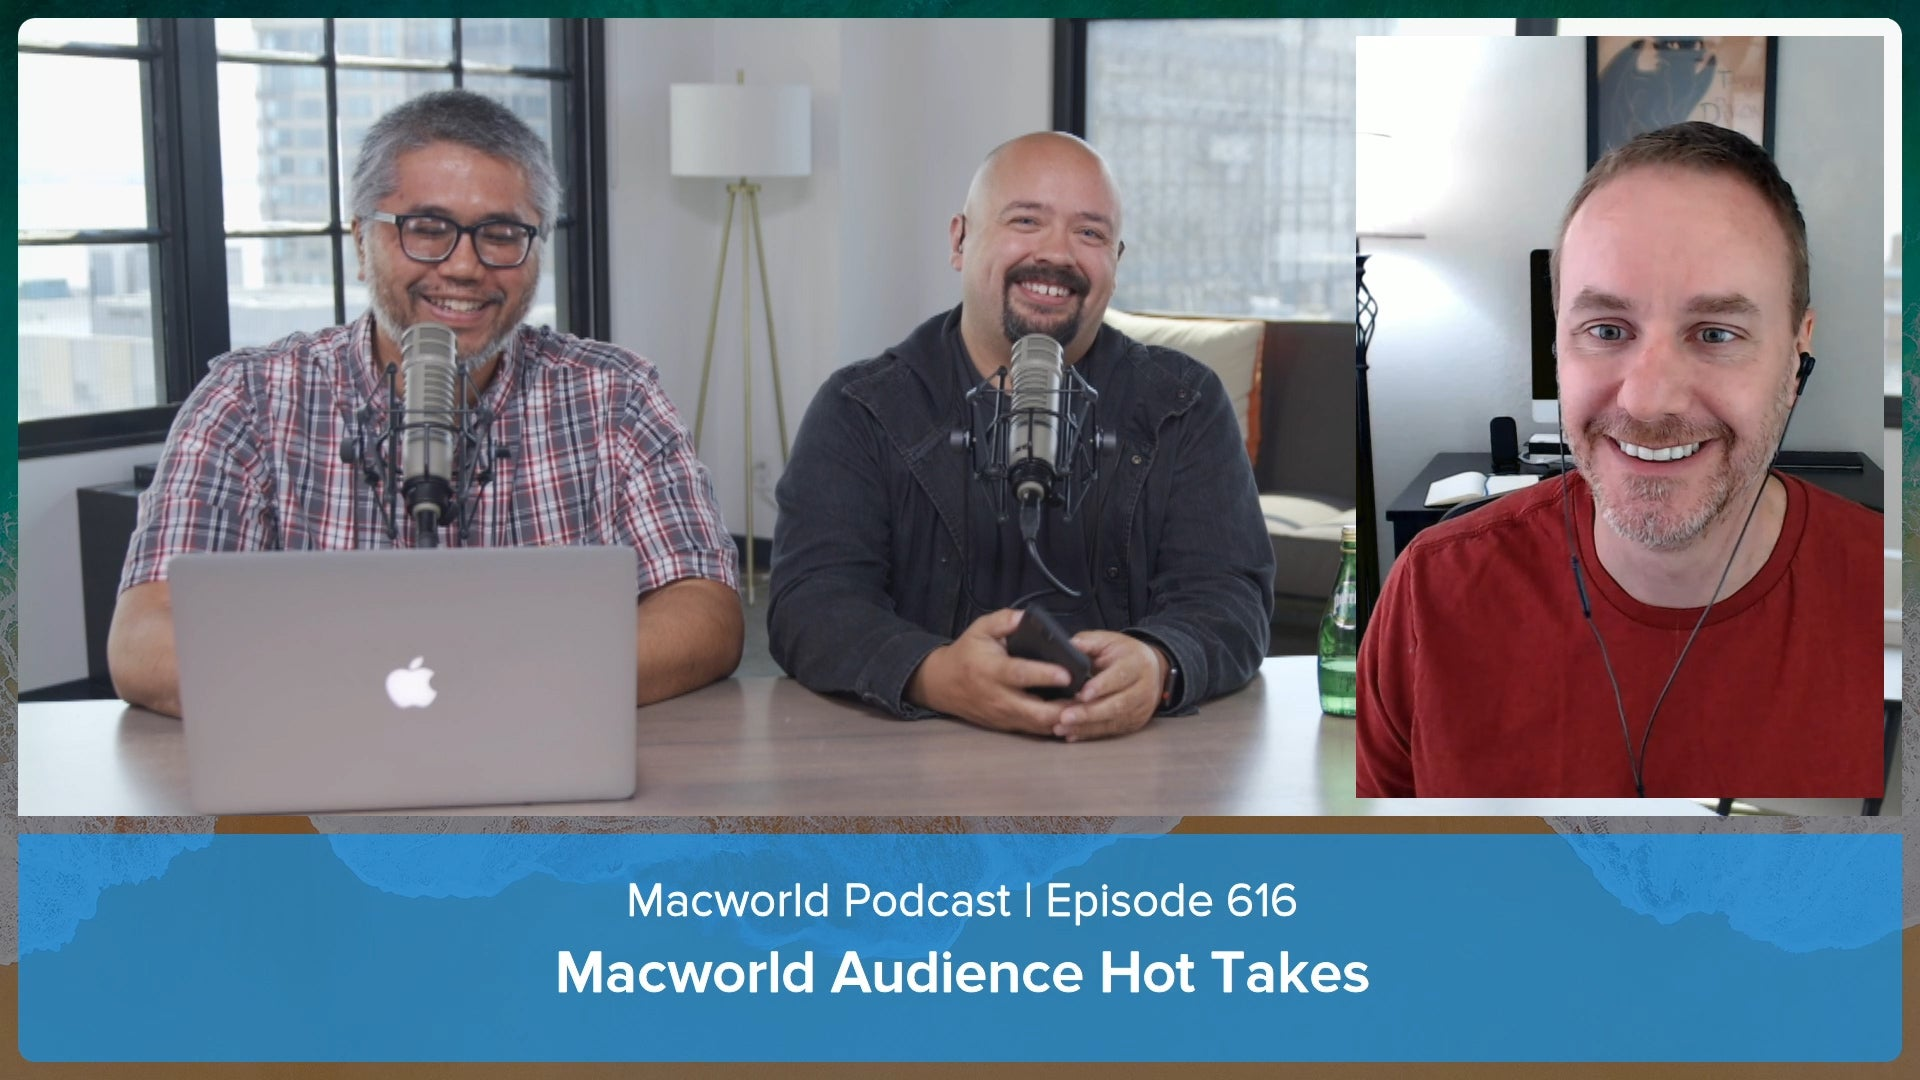 Macworld Podcast 616